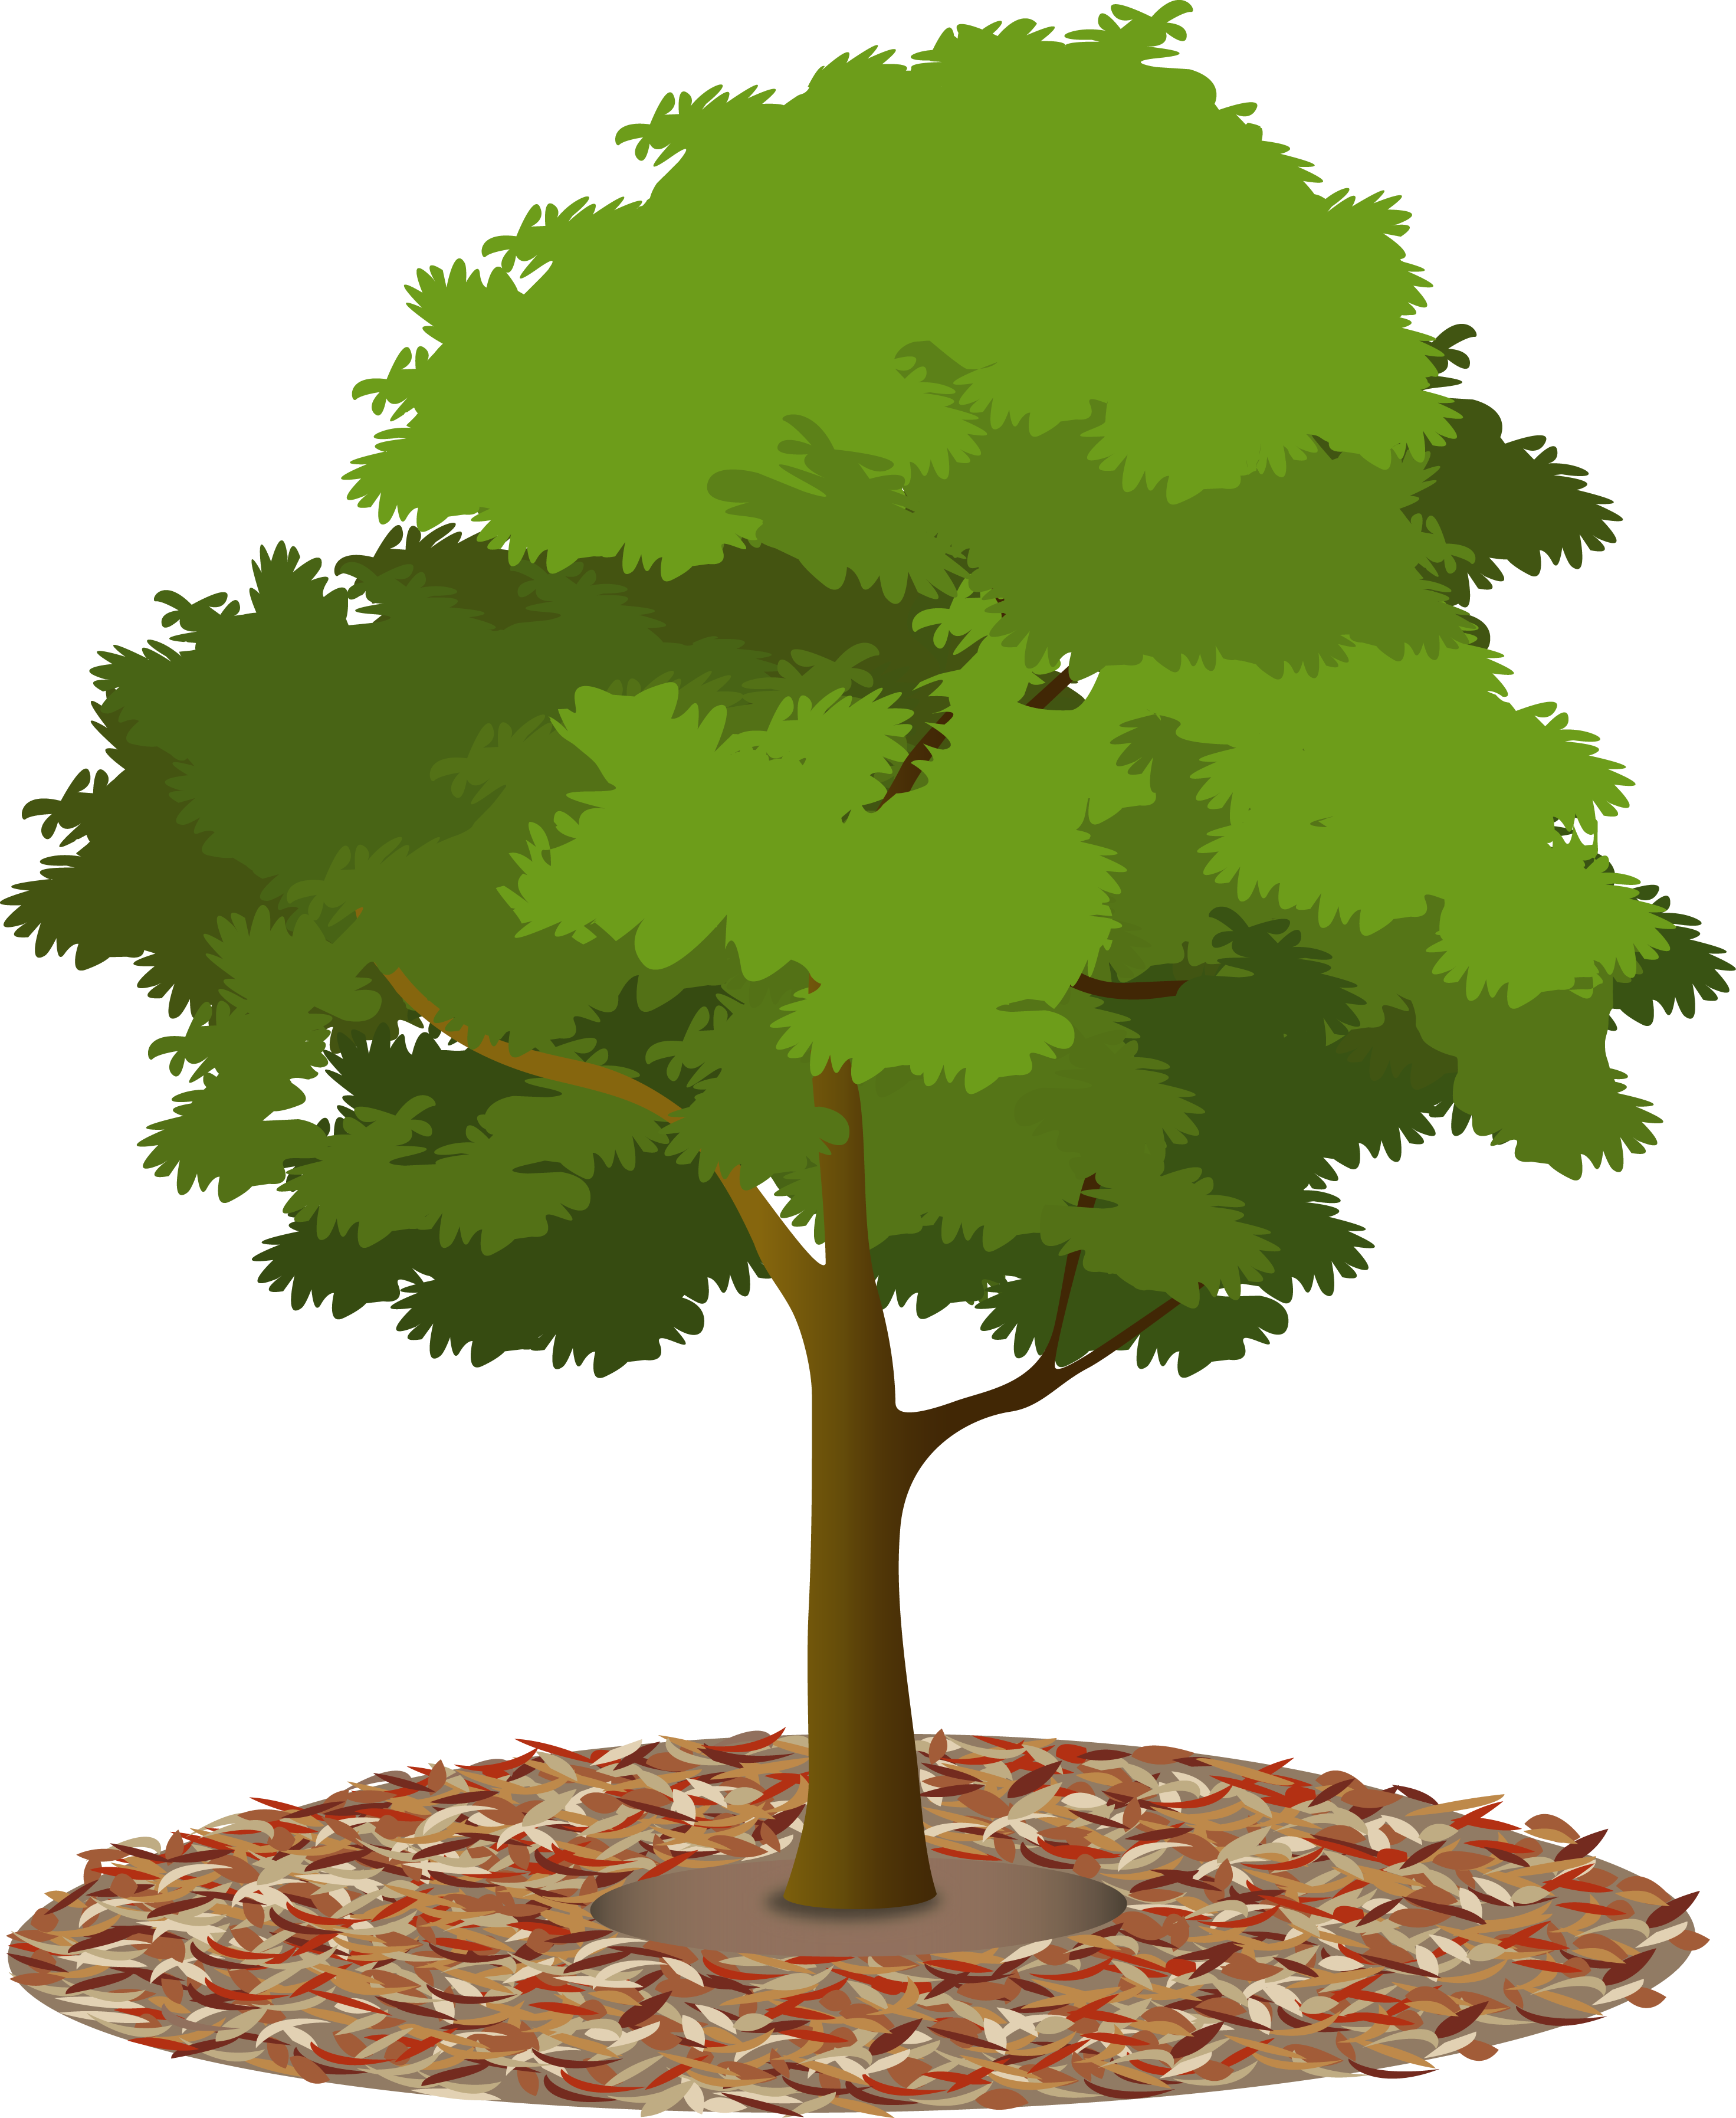 Urban forest council trees. Hills clipart inland